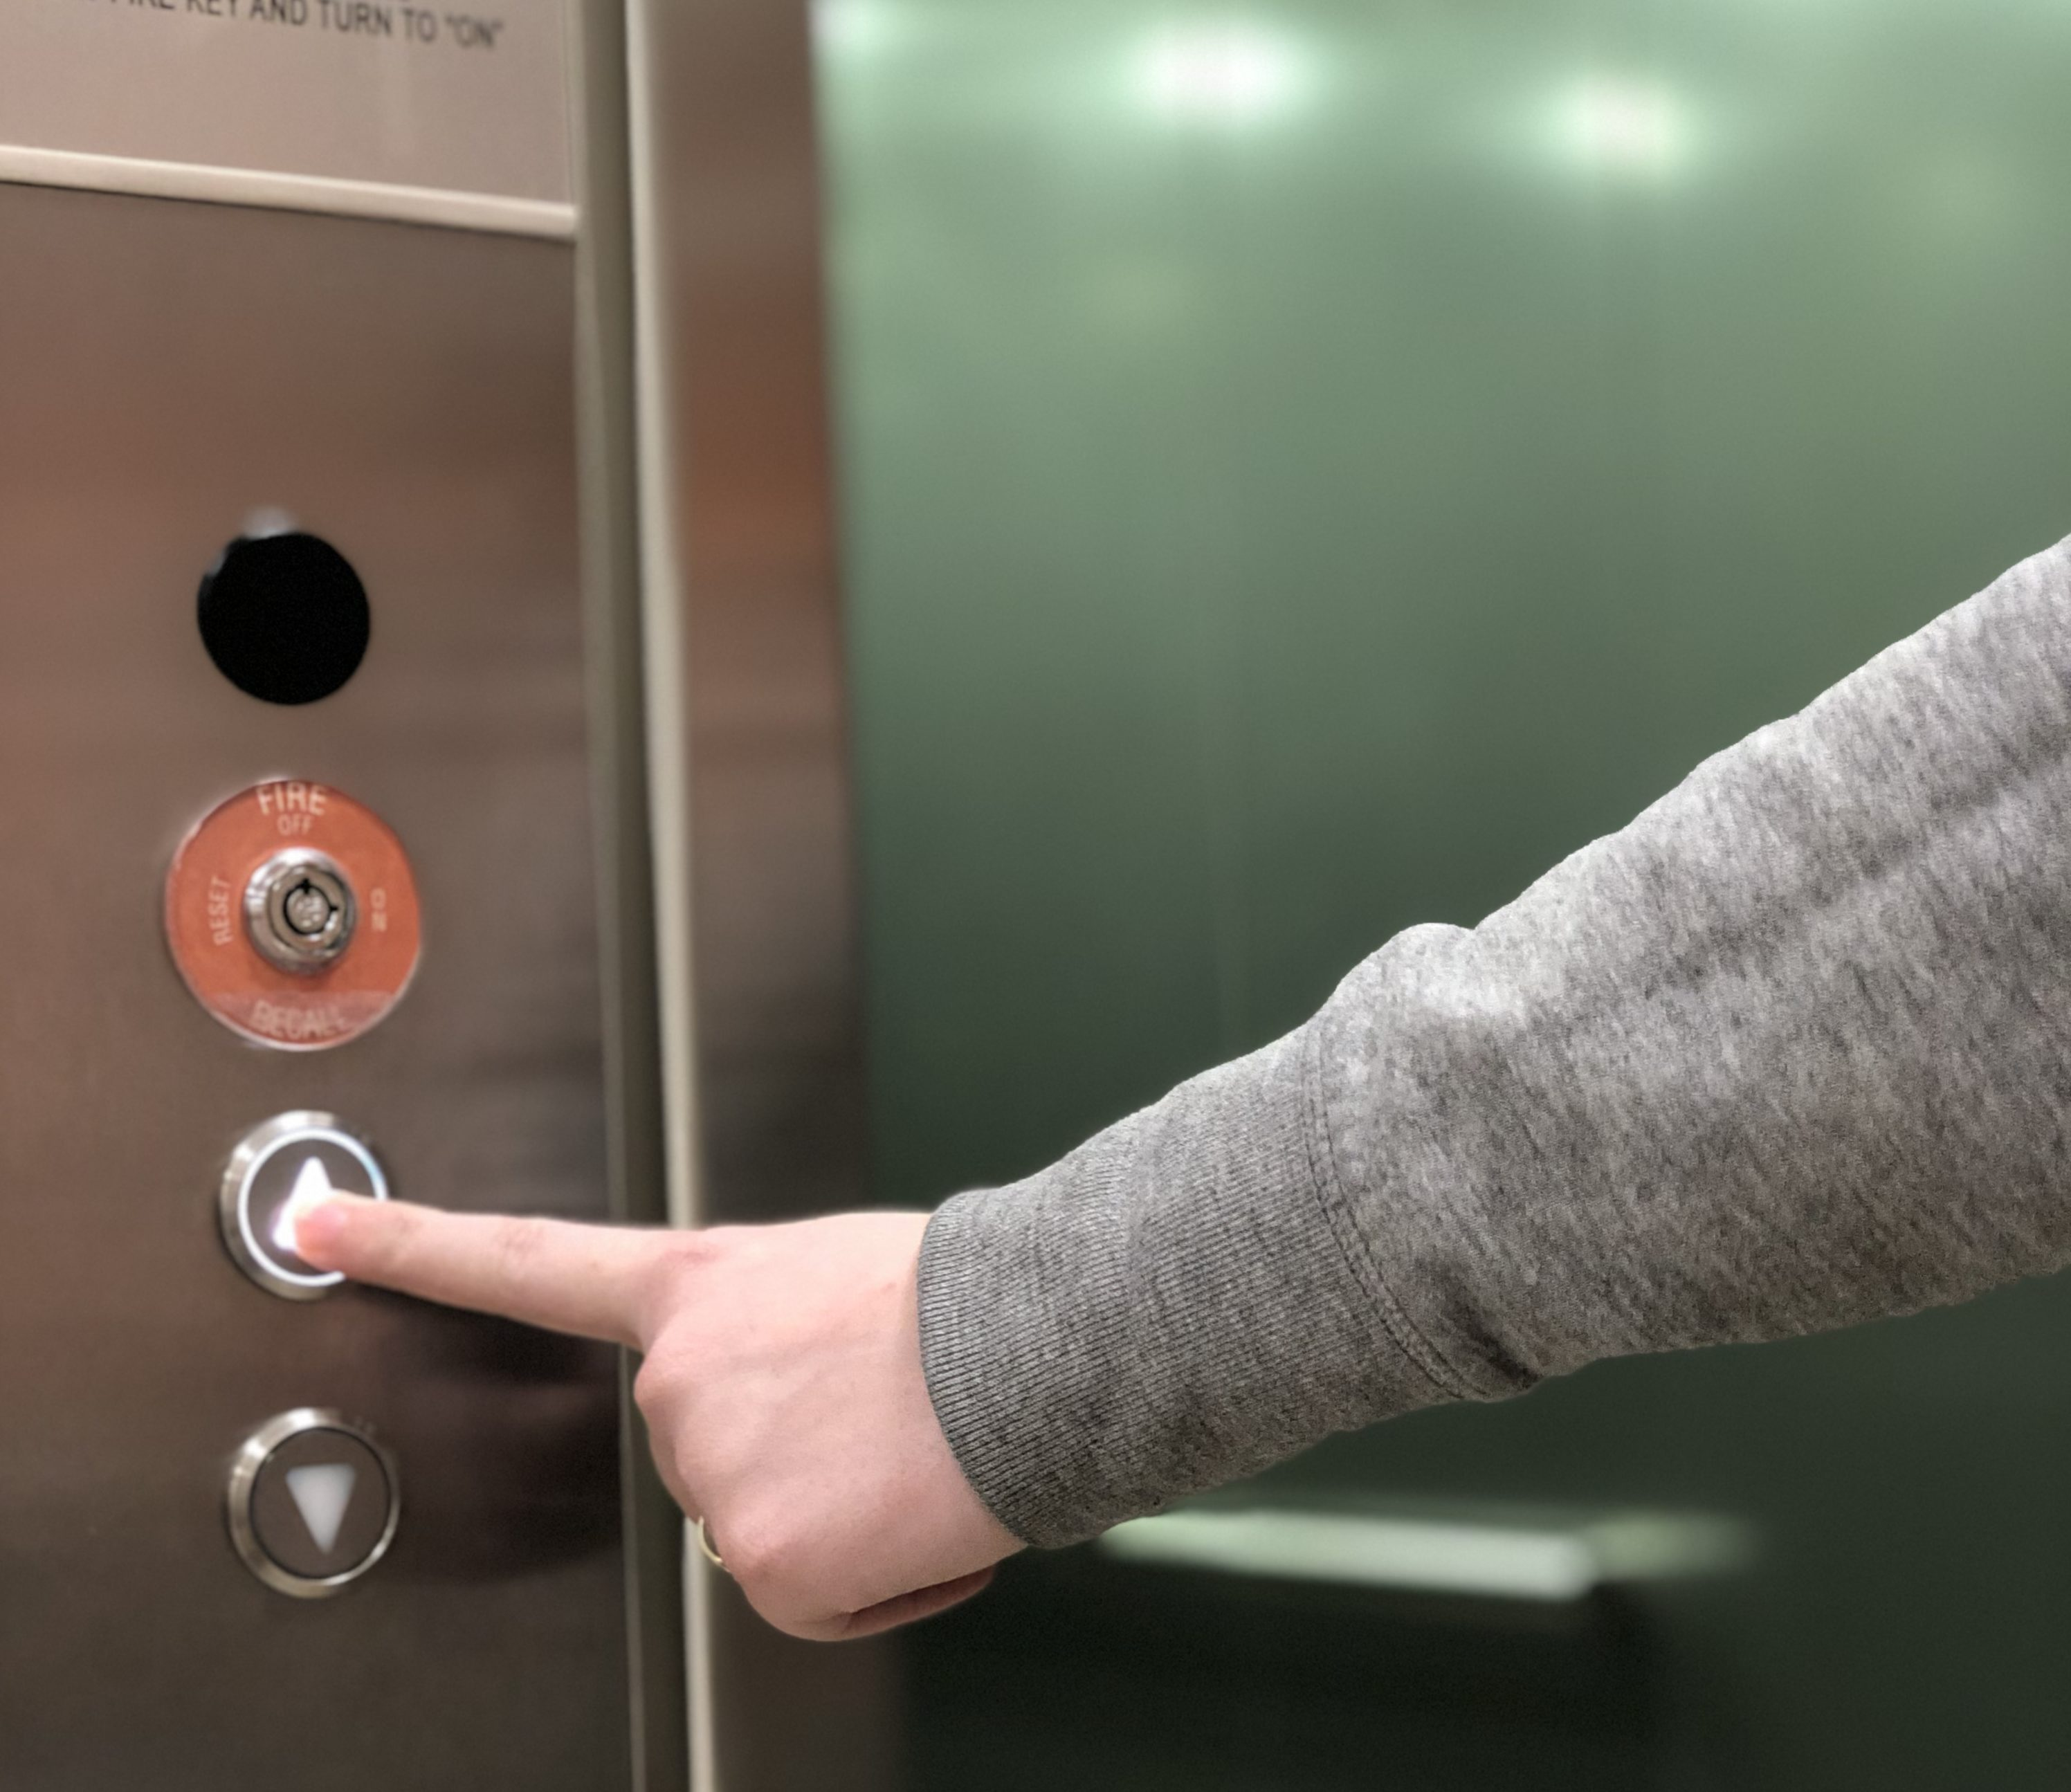 The ups and downs: How elevator problems get solved on campus